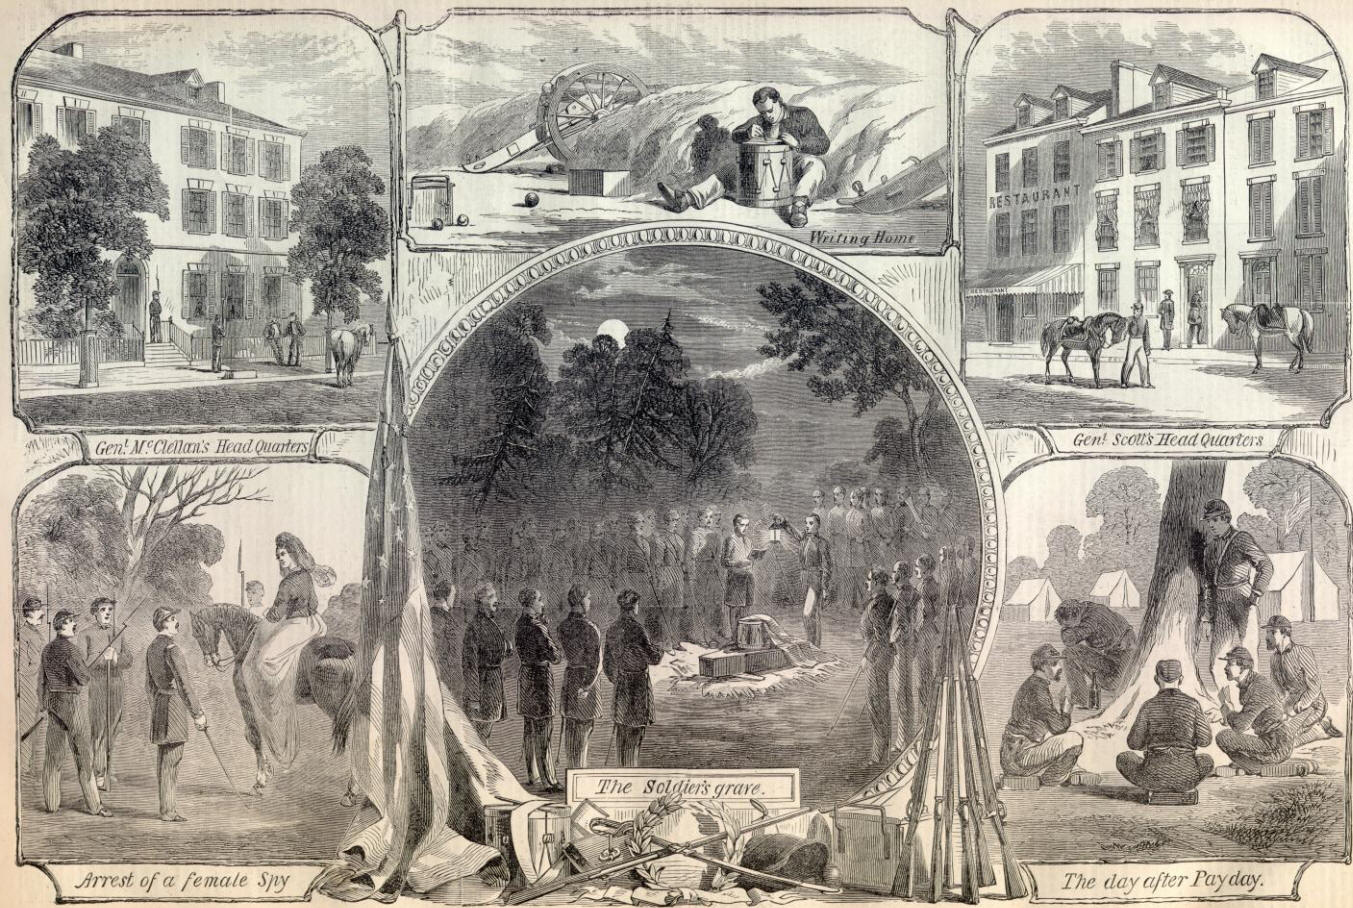 http://www.sonofthesouth.net/leefoundation/civil-war/1861/november/funeral.jpg